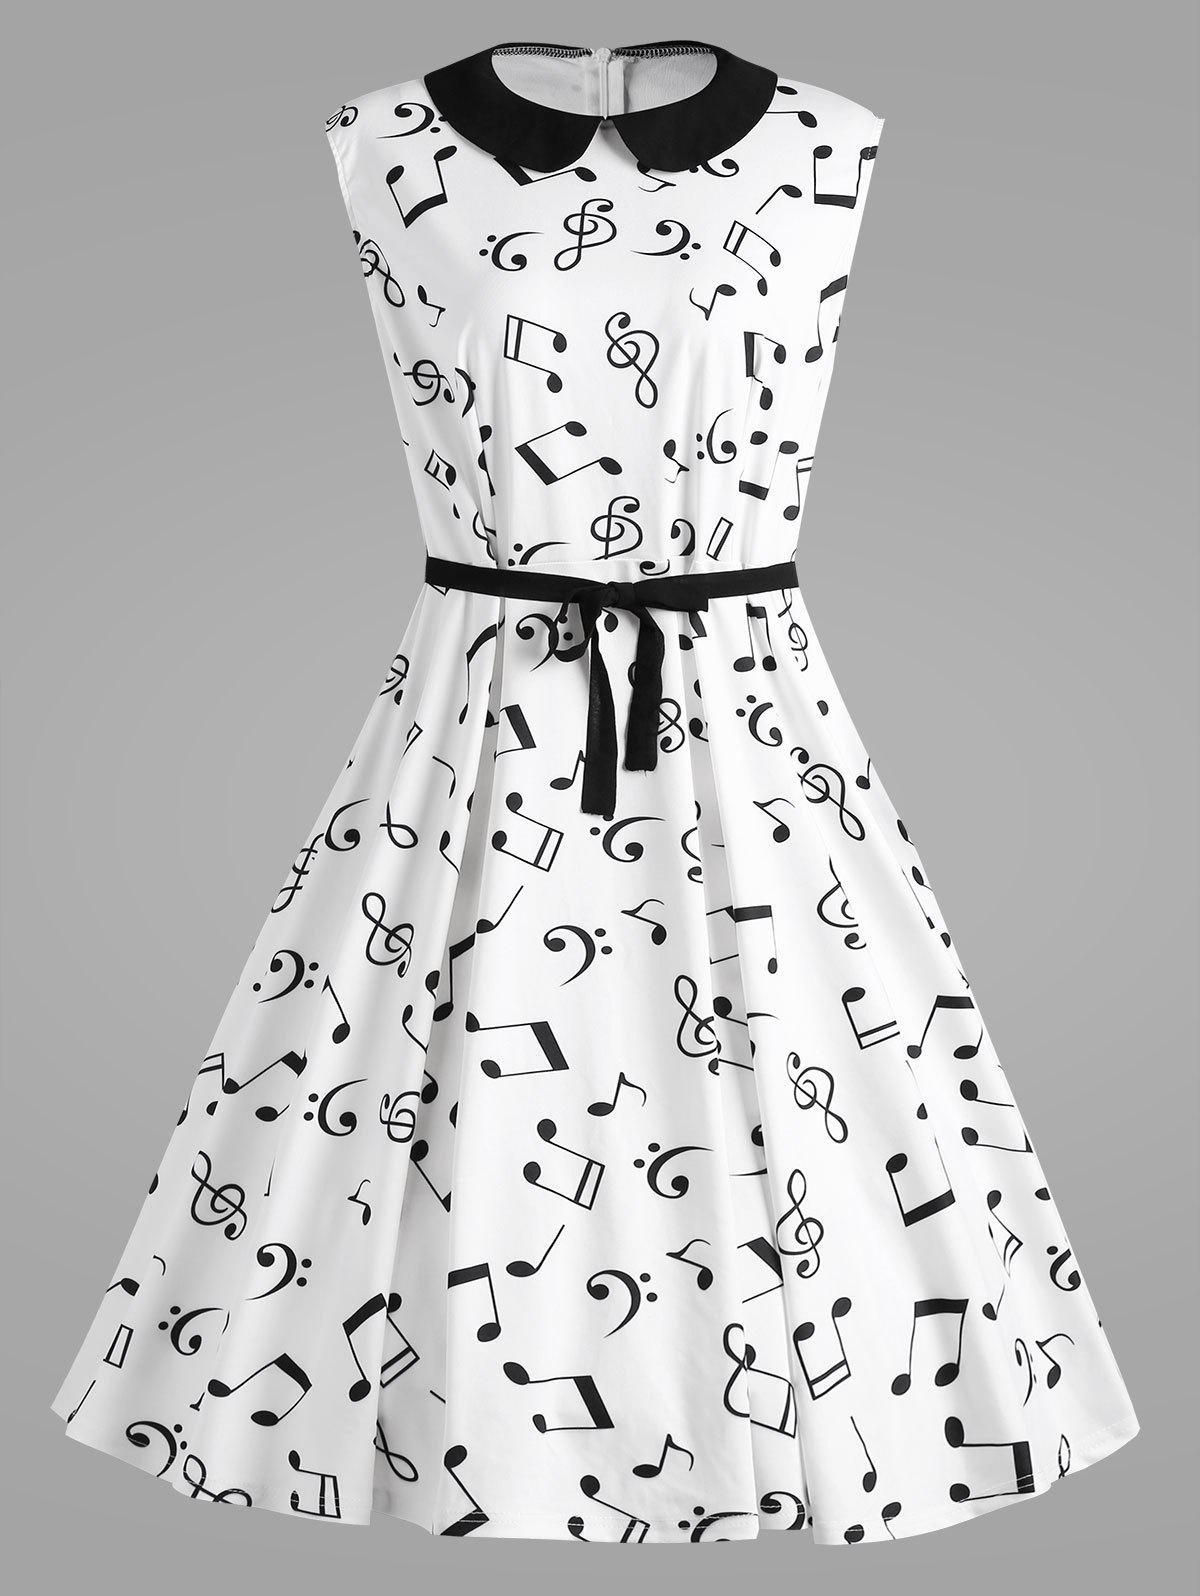 Retro Plus Size Musical Notes Printed DressWOMEN<br><br>Size: 5XL; Color: WHITE; Style: Cute; Material: Cotton Blend,Polyester; Silhouette: A-Line; Dresses Length: Knee-Length; Neckline: Peter Pan Collar; Sleeve Length: Sleeveless; Embellishment: Vintage; Pattern Type: Print; With Belt: Yes; Season: Fall,Spring,Winter; Weight: 0.4200kg; Package Contents: 1 x Dress 1 x Belt;